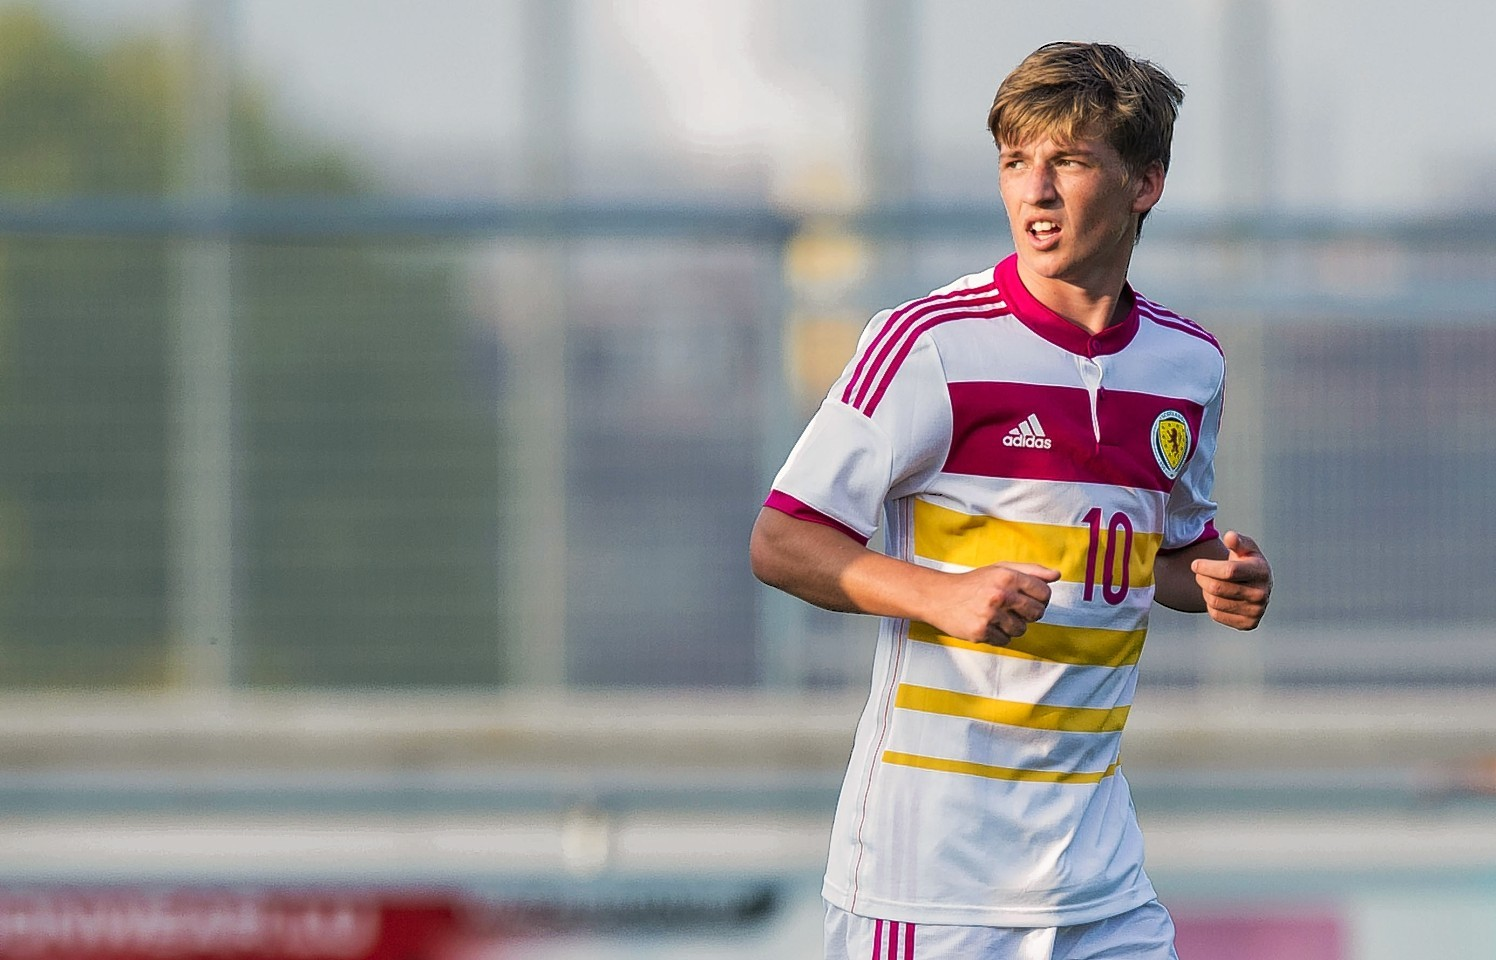 Ryad Gauld is set to step up to the Scotland first team squad